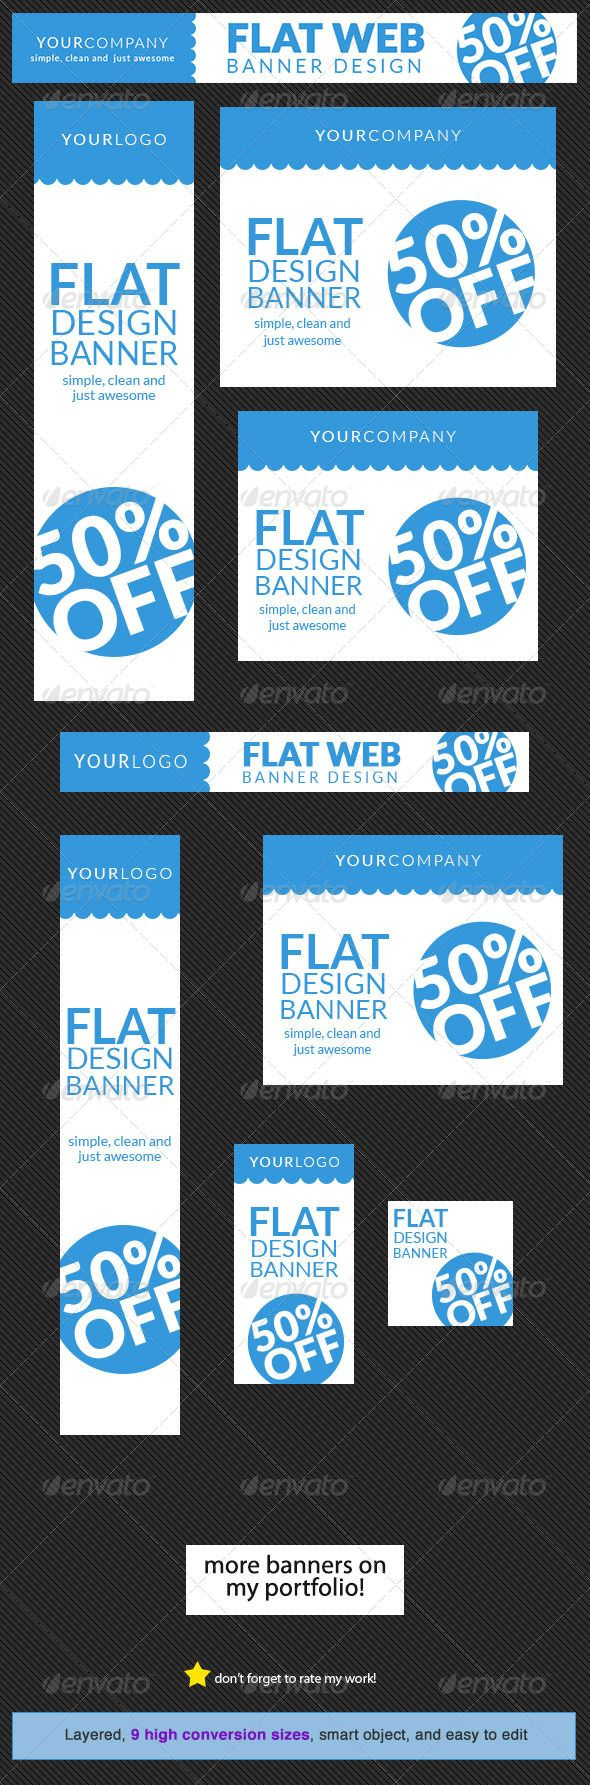 Design google banner ads - Flat Web Banner Design Template